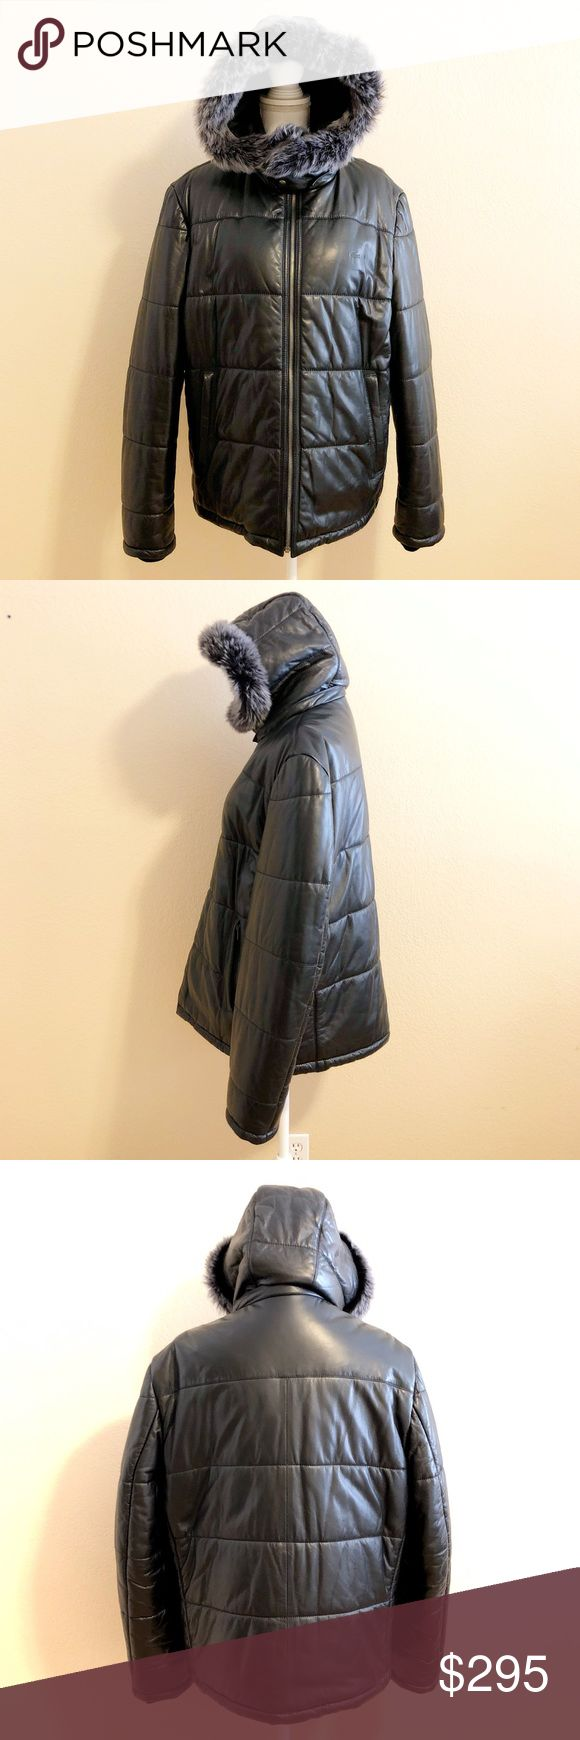 Lacoste | Men's Leather Down Jacket 🔹Lacoste, Men's, Leather, Down Jacket  🔹Detachable hood with fur trim  🔹Full zip front  🔹Two front zippered waist pockets  🔹Black  🔹Leather with down filling  🔹Size US Men's Extra Large; 56 DE  🔹Excellent used condition  🌀Bundle to Save 20% 💭Make an offer! Lacoste Jackets & Coats Puffers